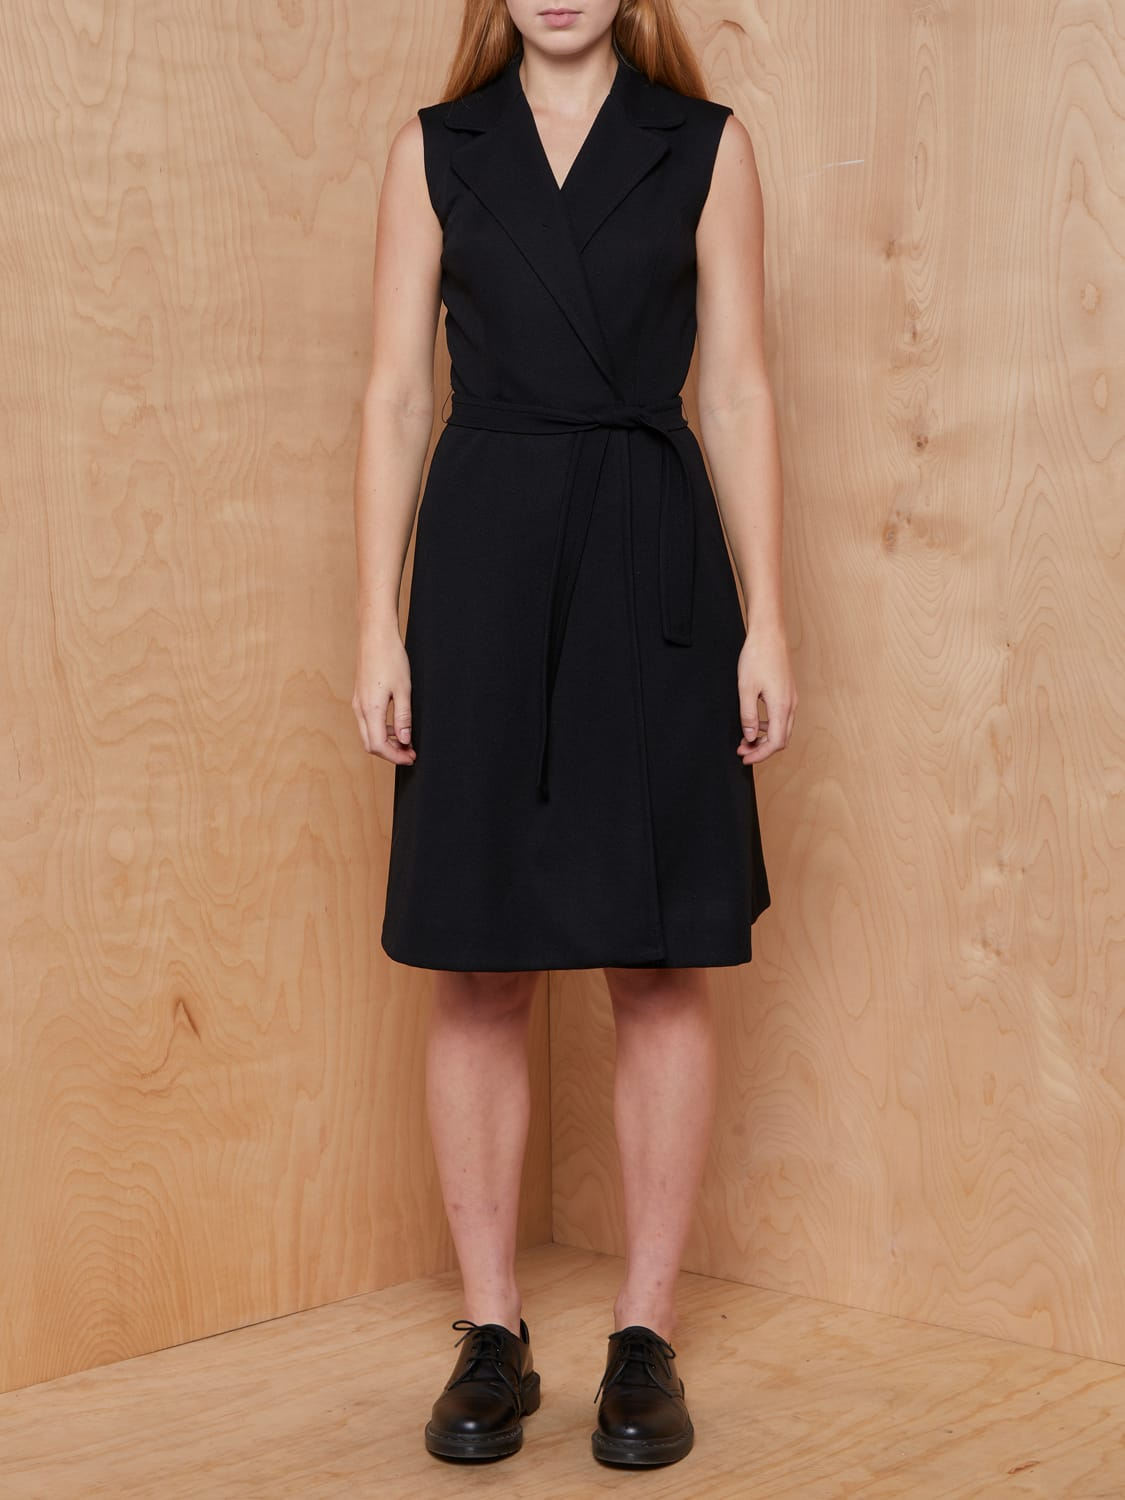 Vintage Black Textured Dress with Tie Wrap